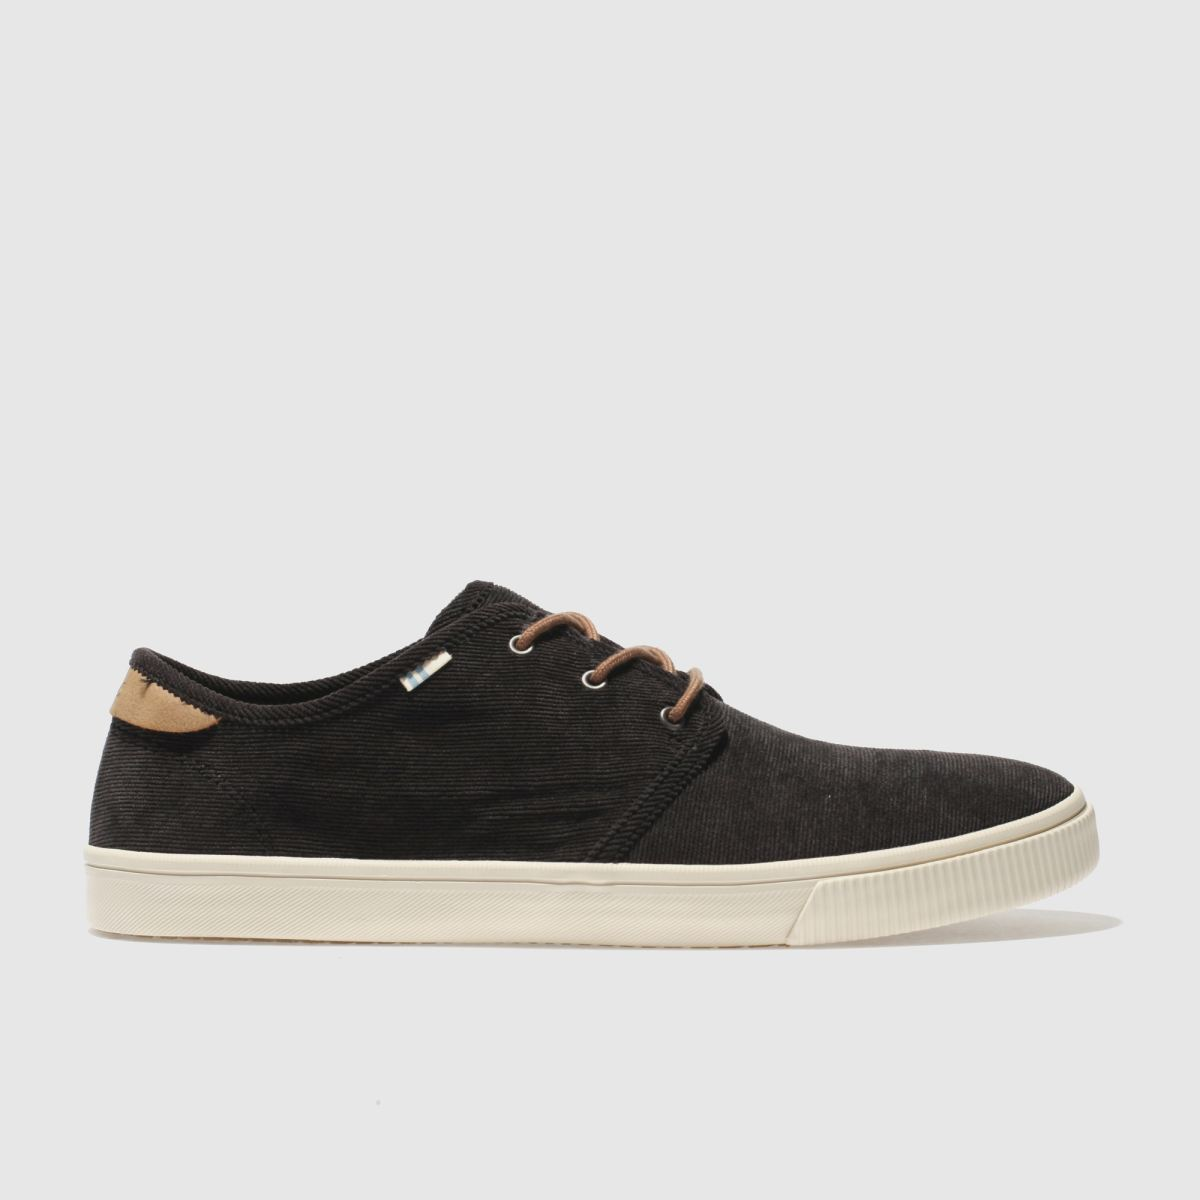 Toms Black & Brown Carlo Shoes